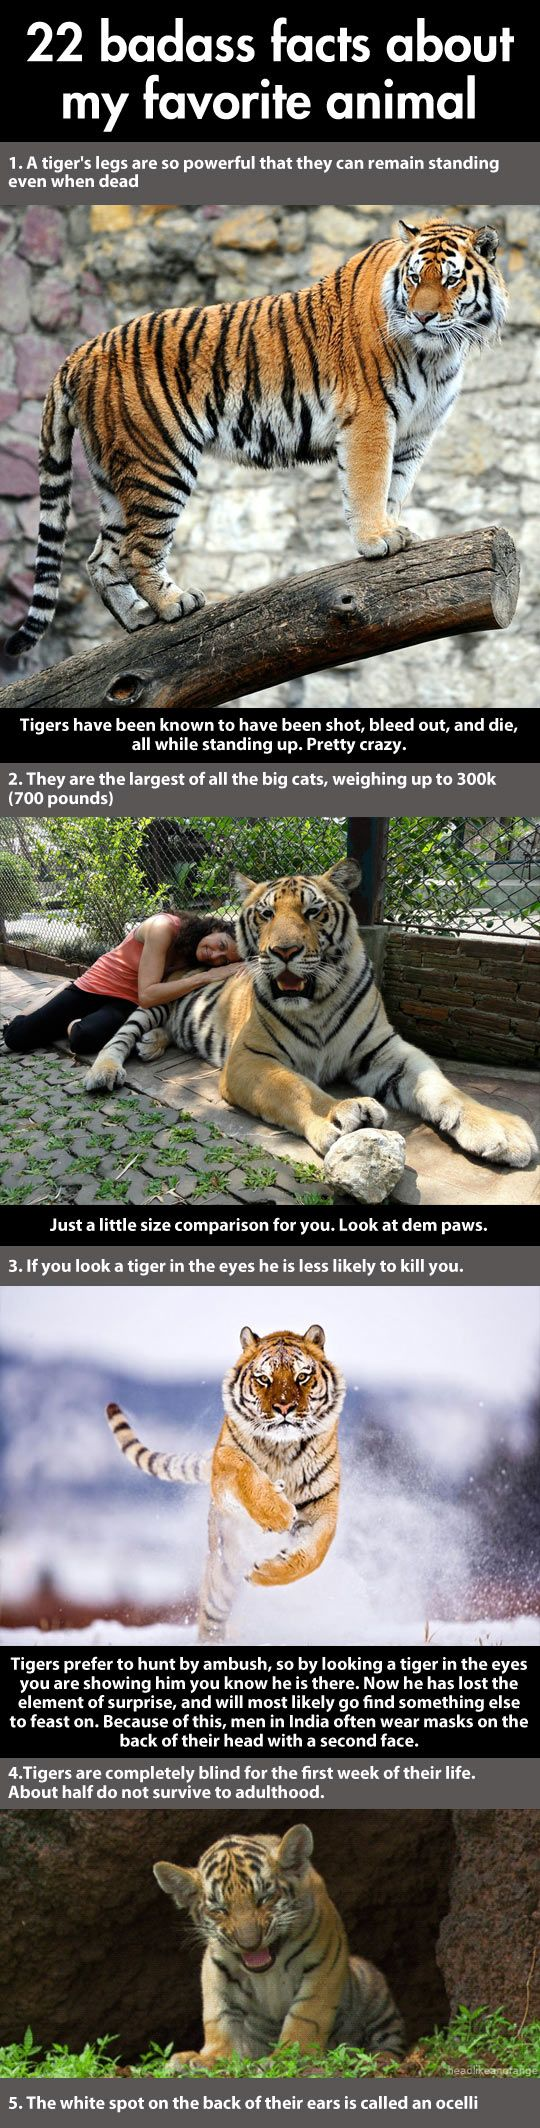 It says there are more tigers in captivity in the US then there are left in the wild... that's sad